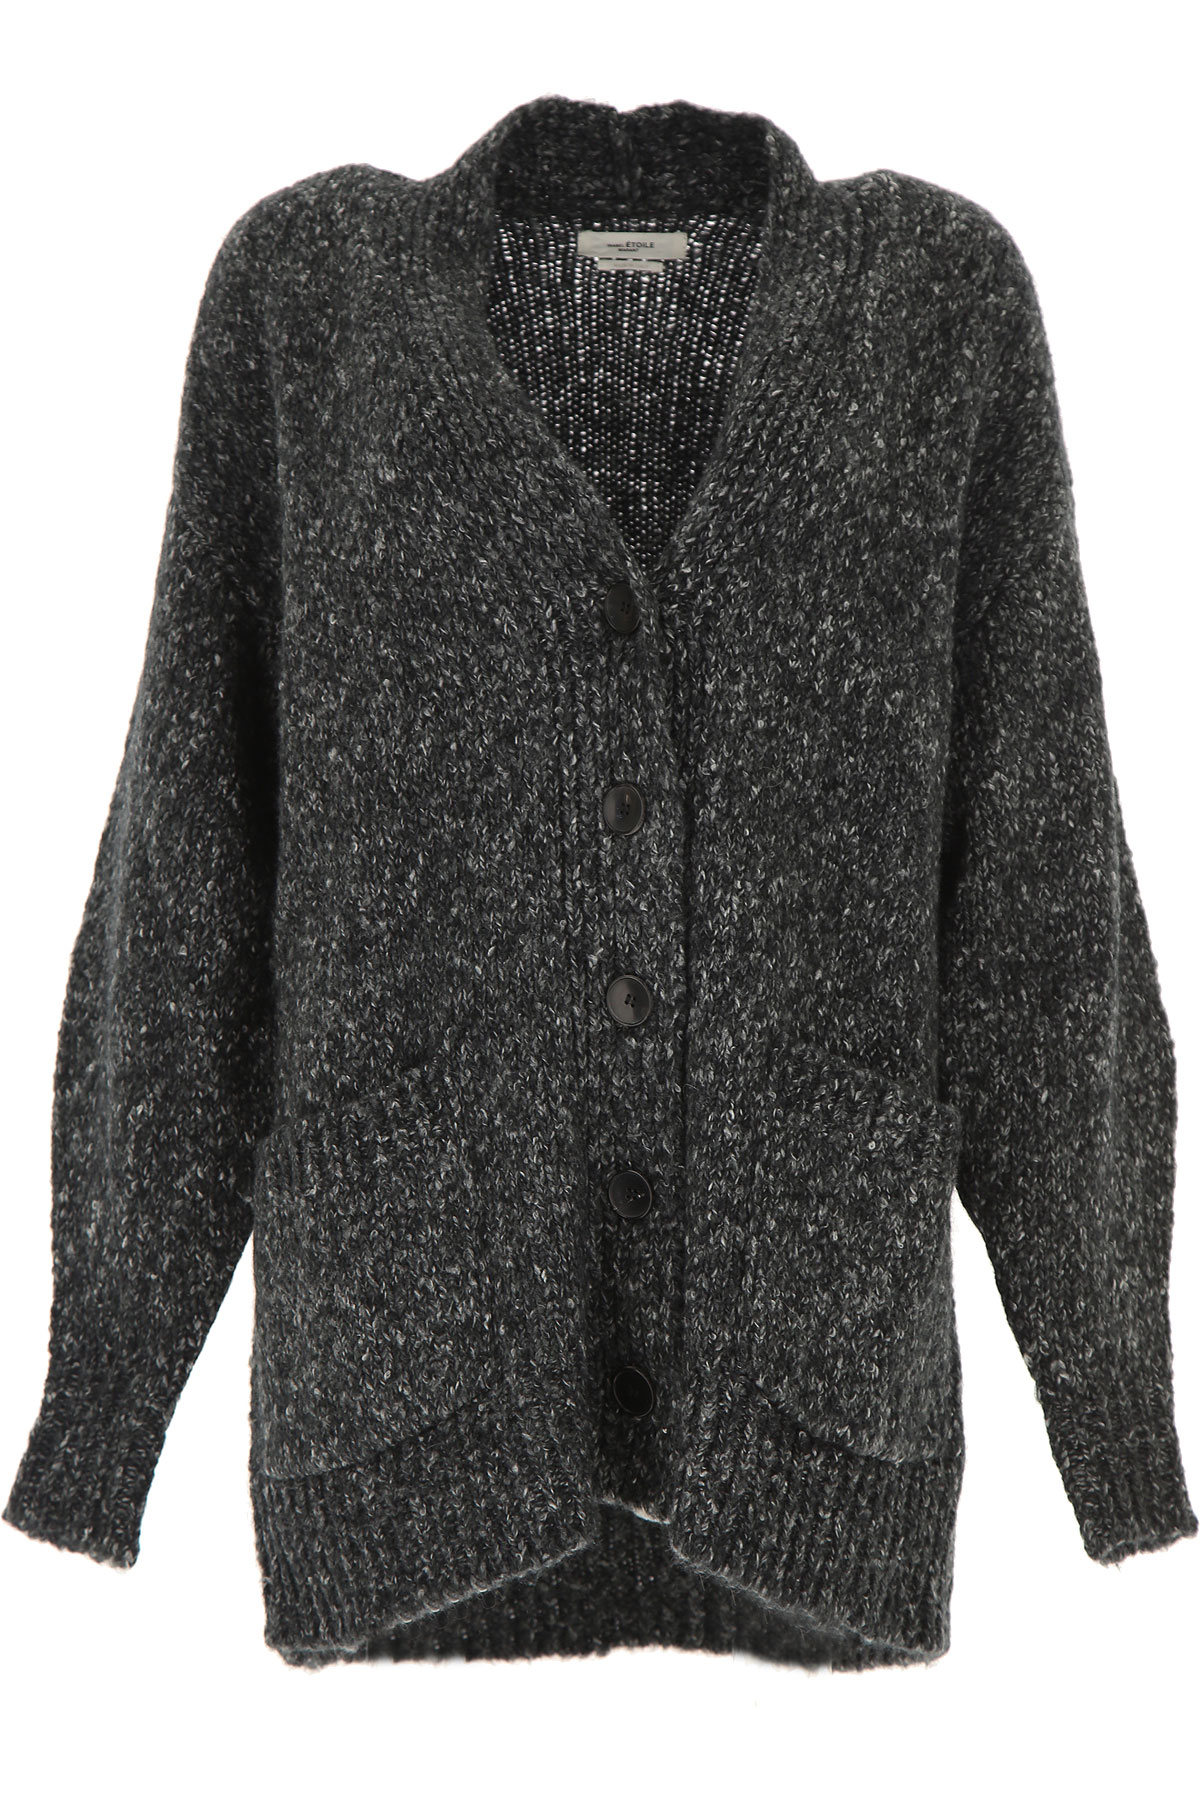 Isabel Marant Sweater for Women Jumper On Sale, Anthracite, alpaca, 2019, 4 6